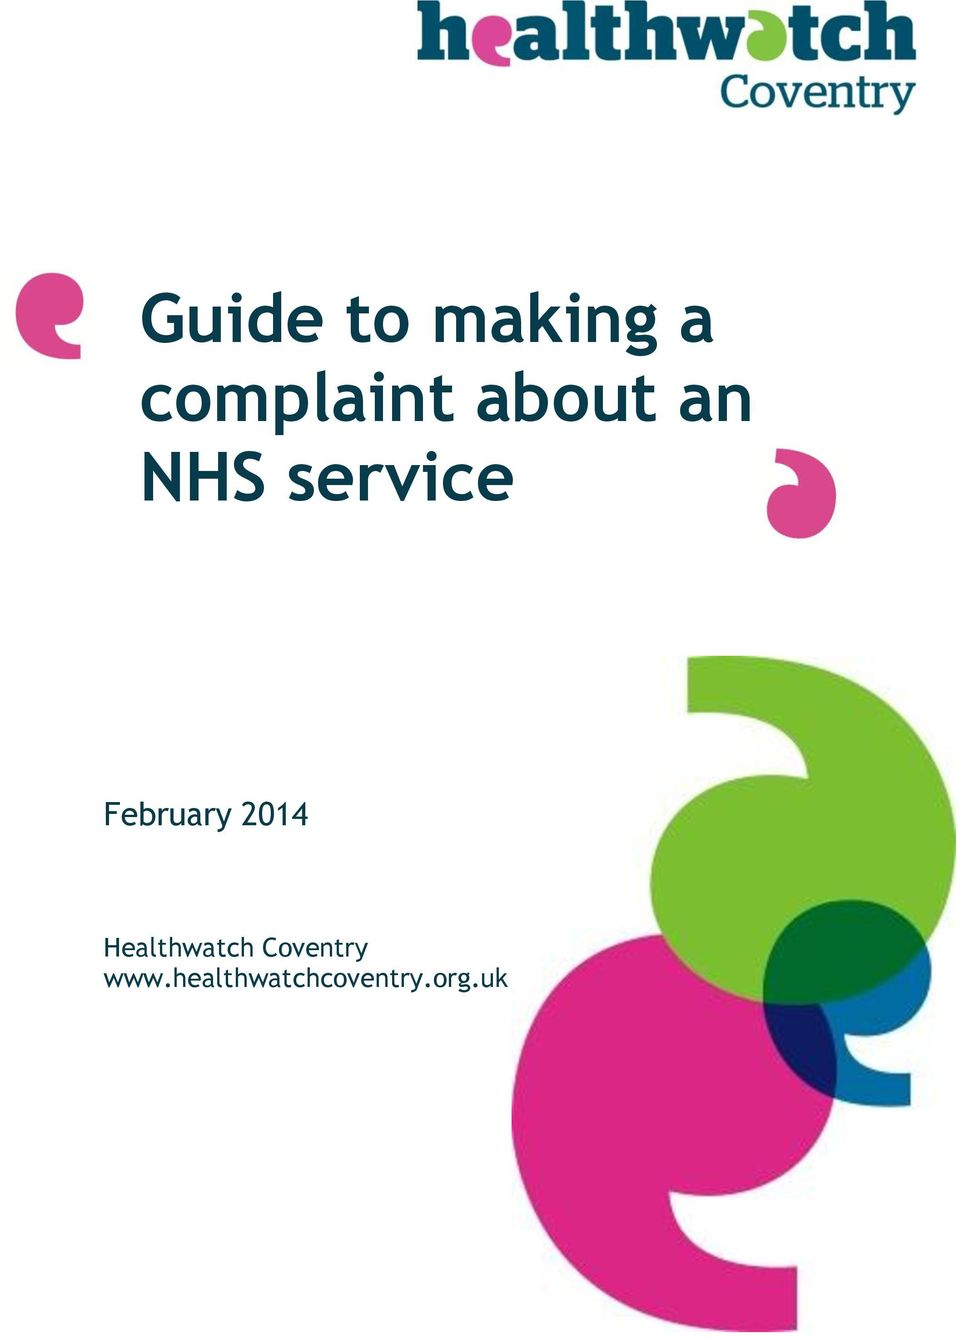 February 2014 Healthwatch